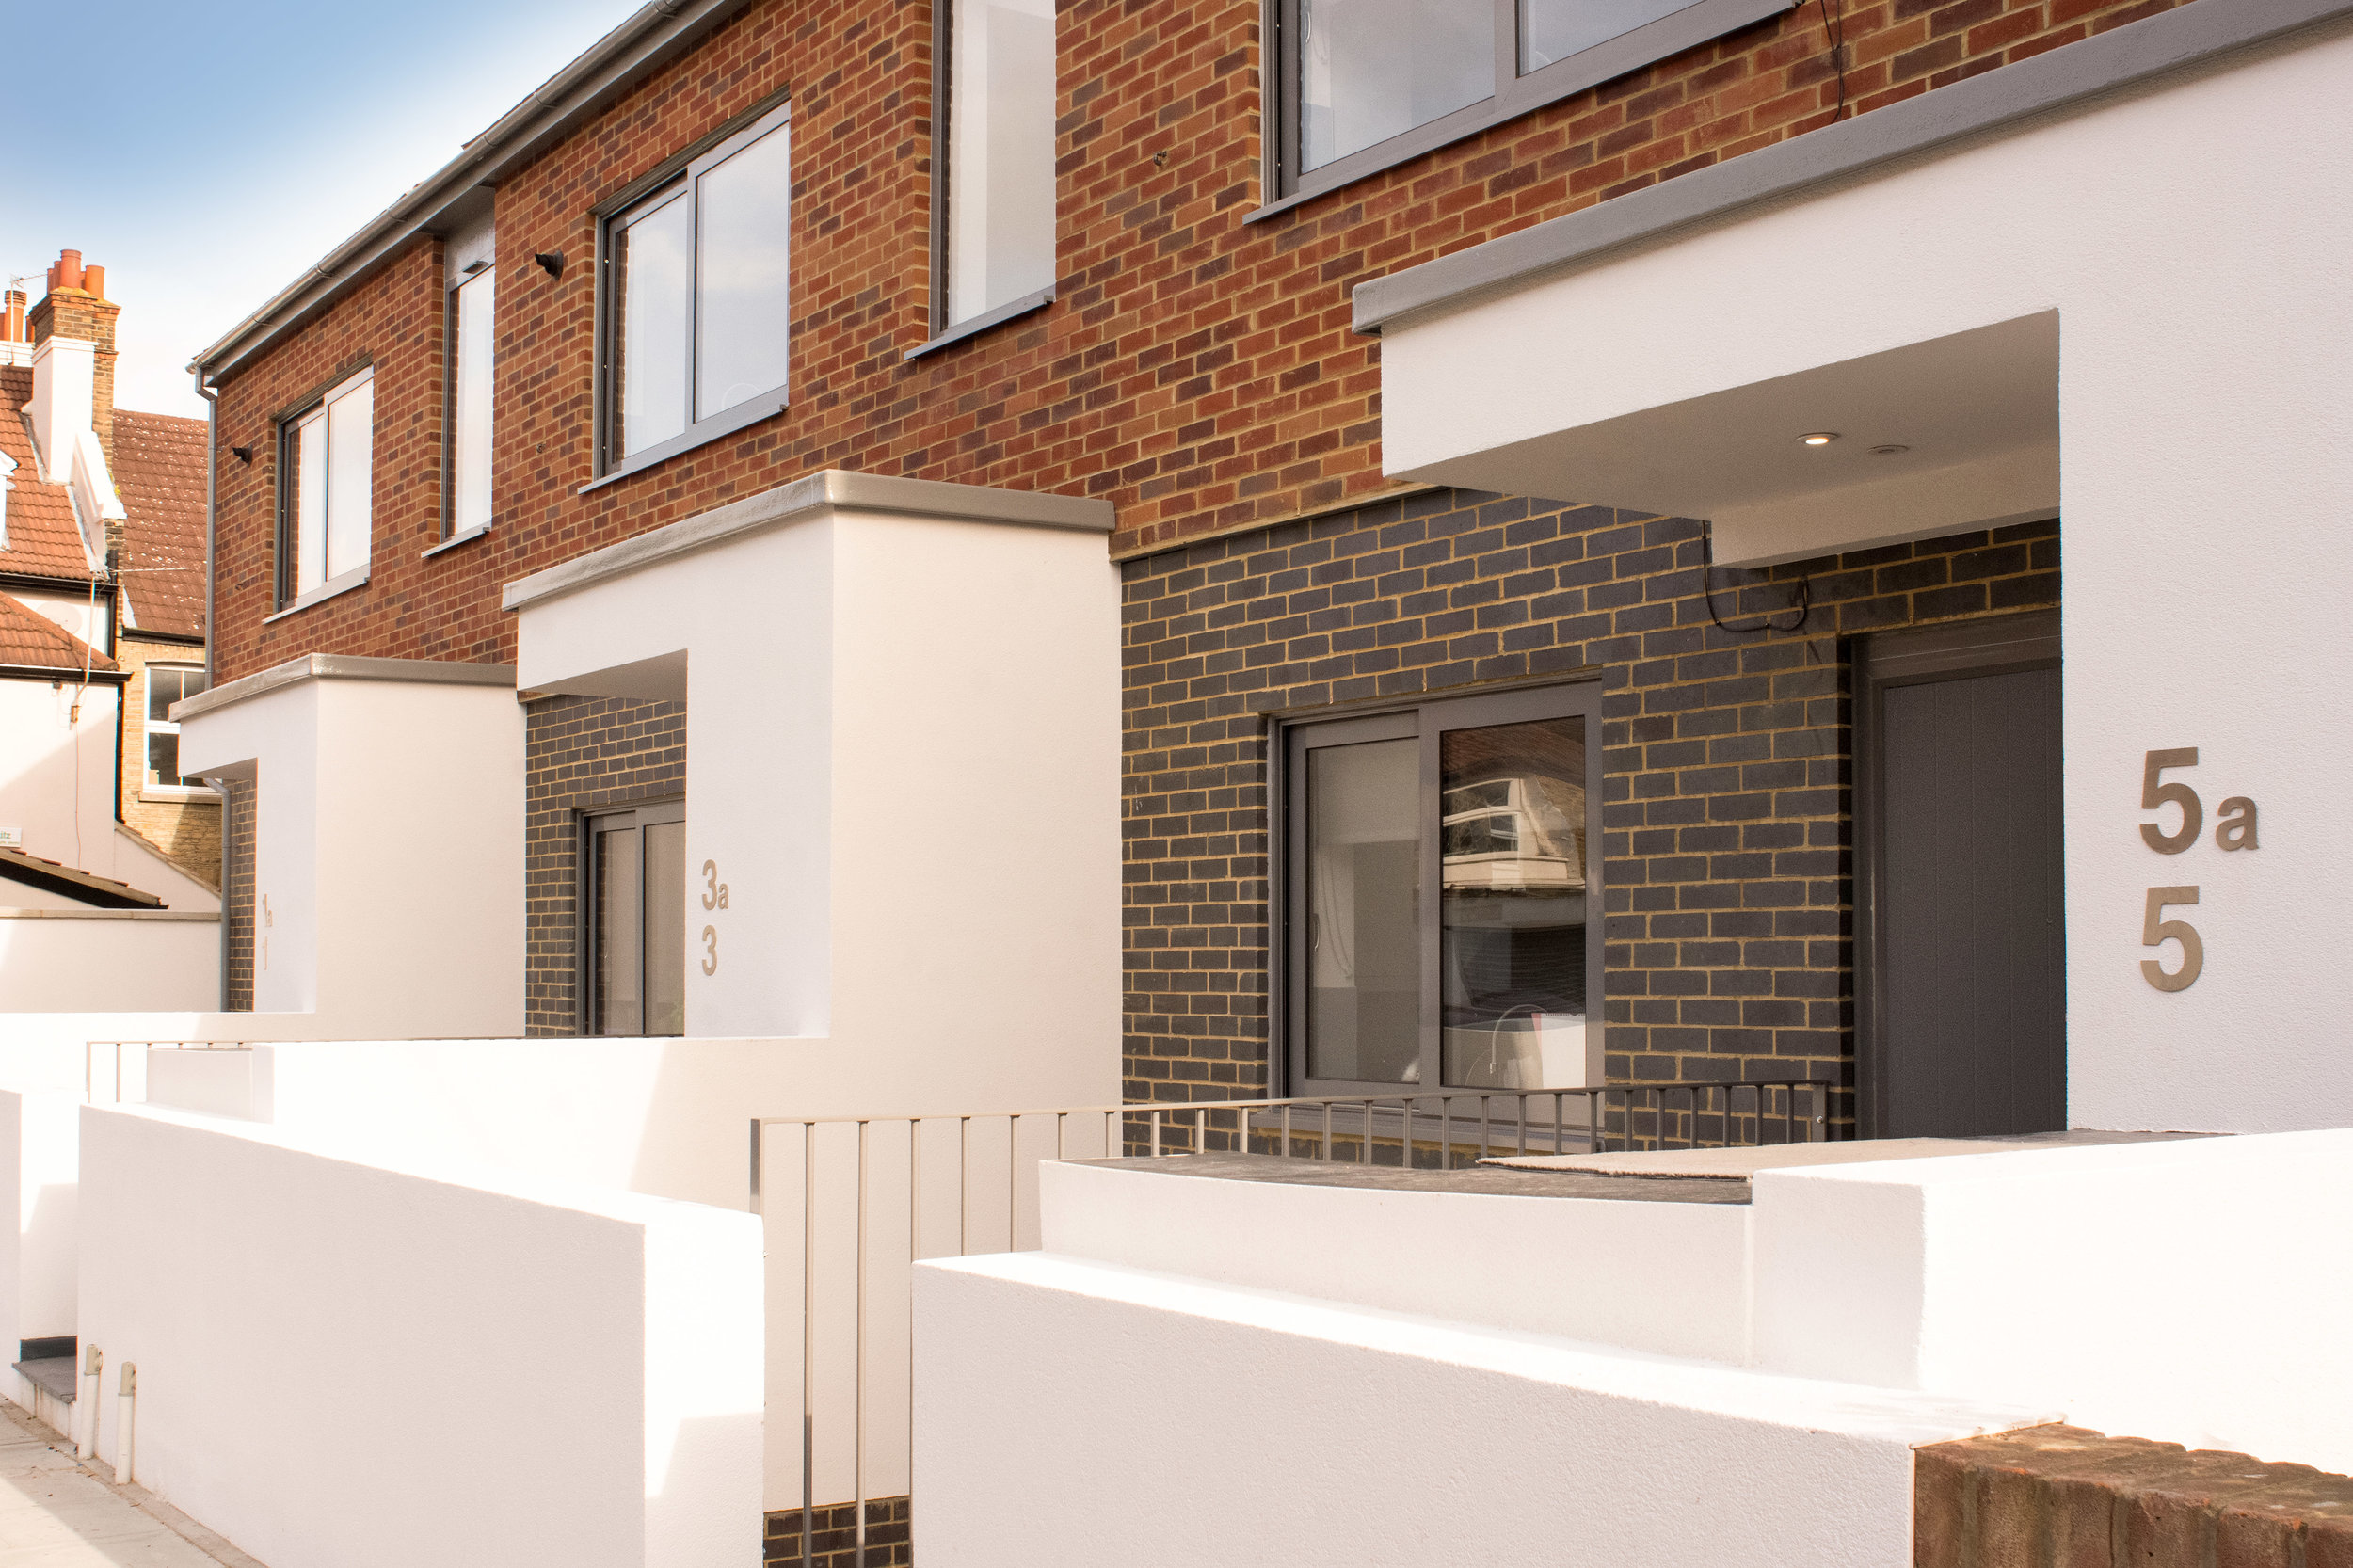 exterior-flats--1to5--radbourne-road-DCP.jpg